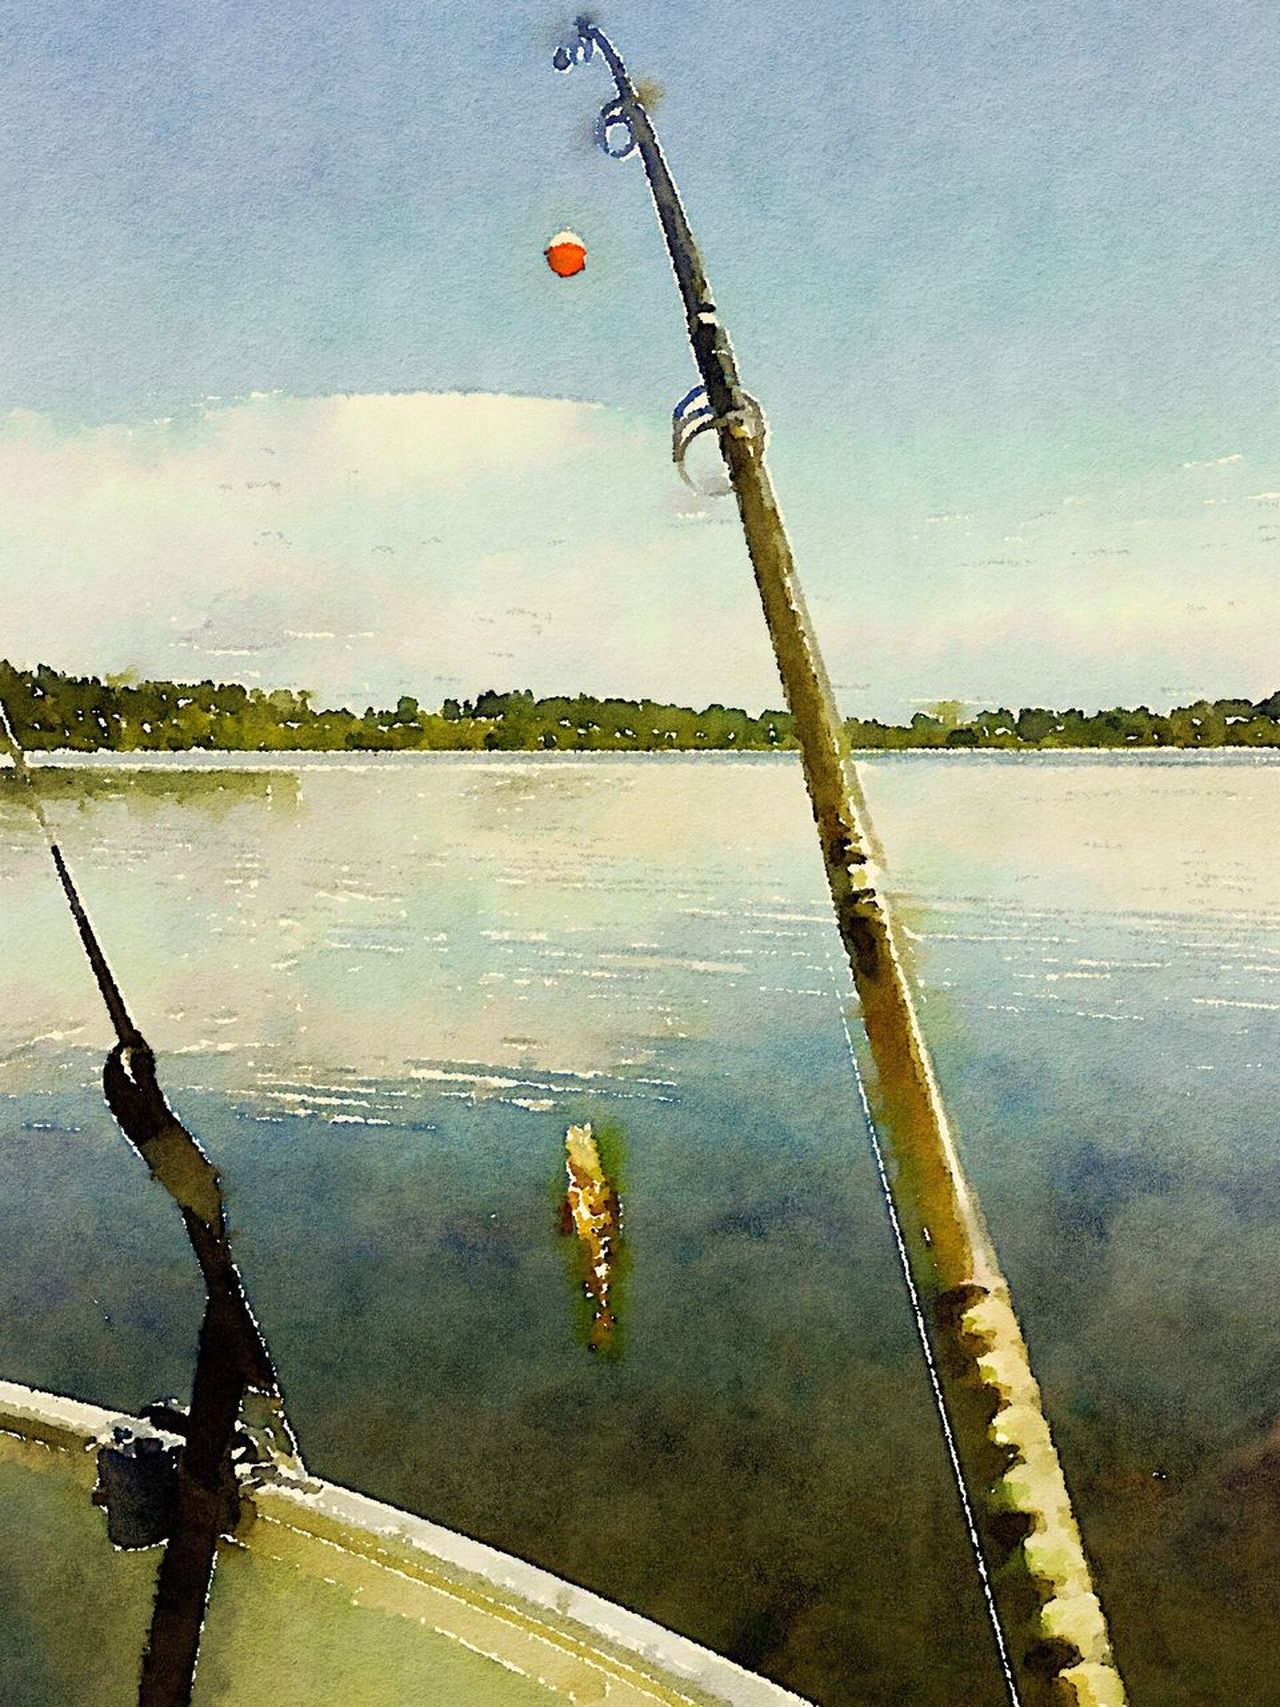 Reflection Water Sky Lake Outdoors Nautical Vessel Nature Fish Fishing Fishing Pole Tree Line Trees Painting Art